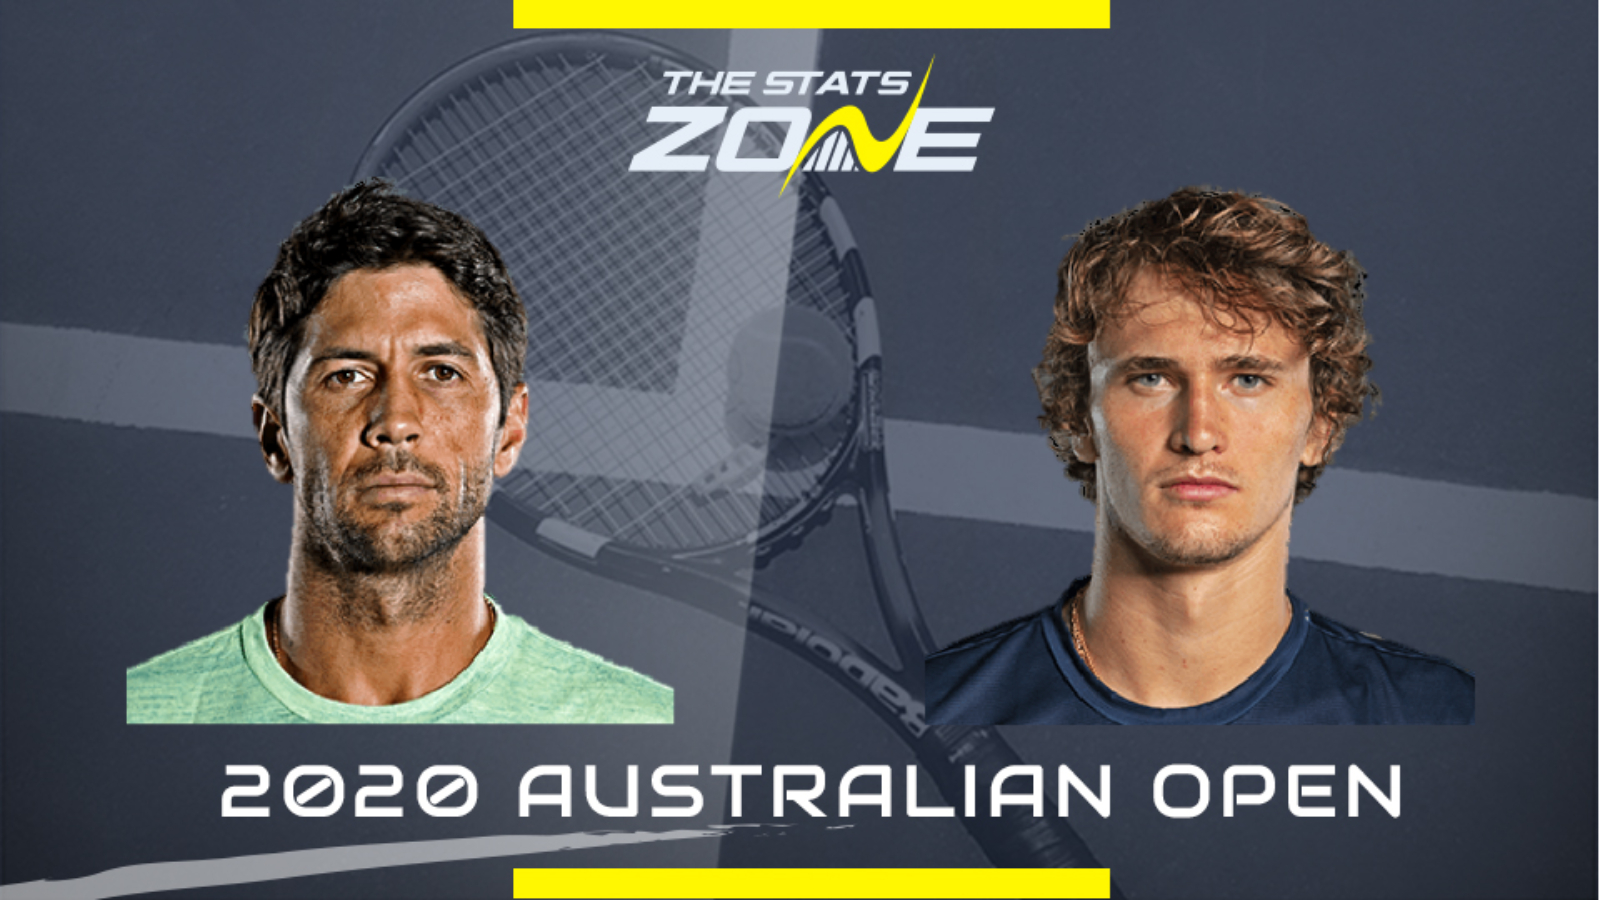 Verdasco Vs Zverev